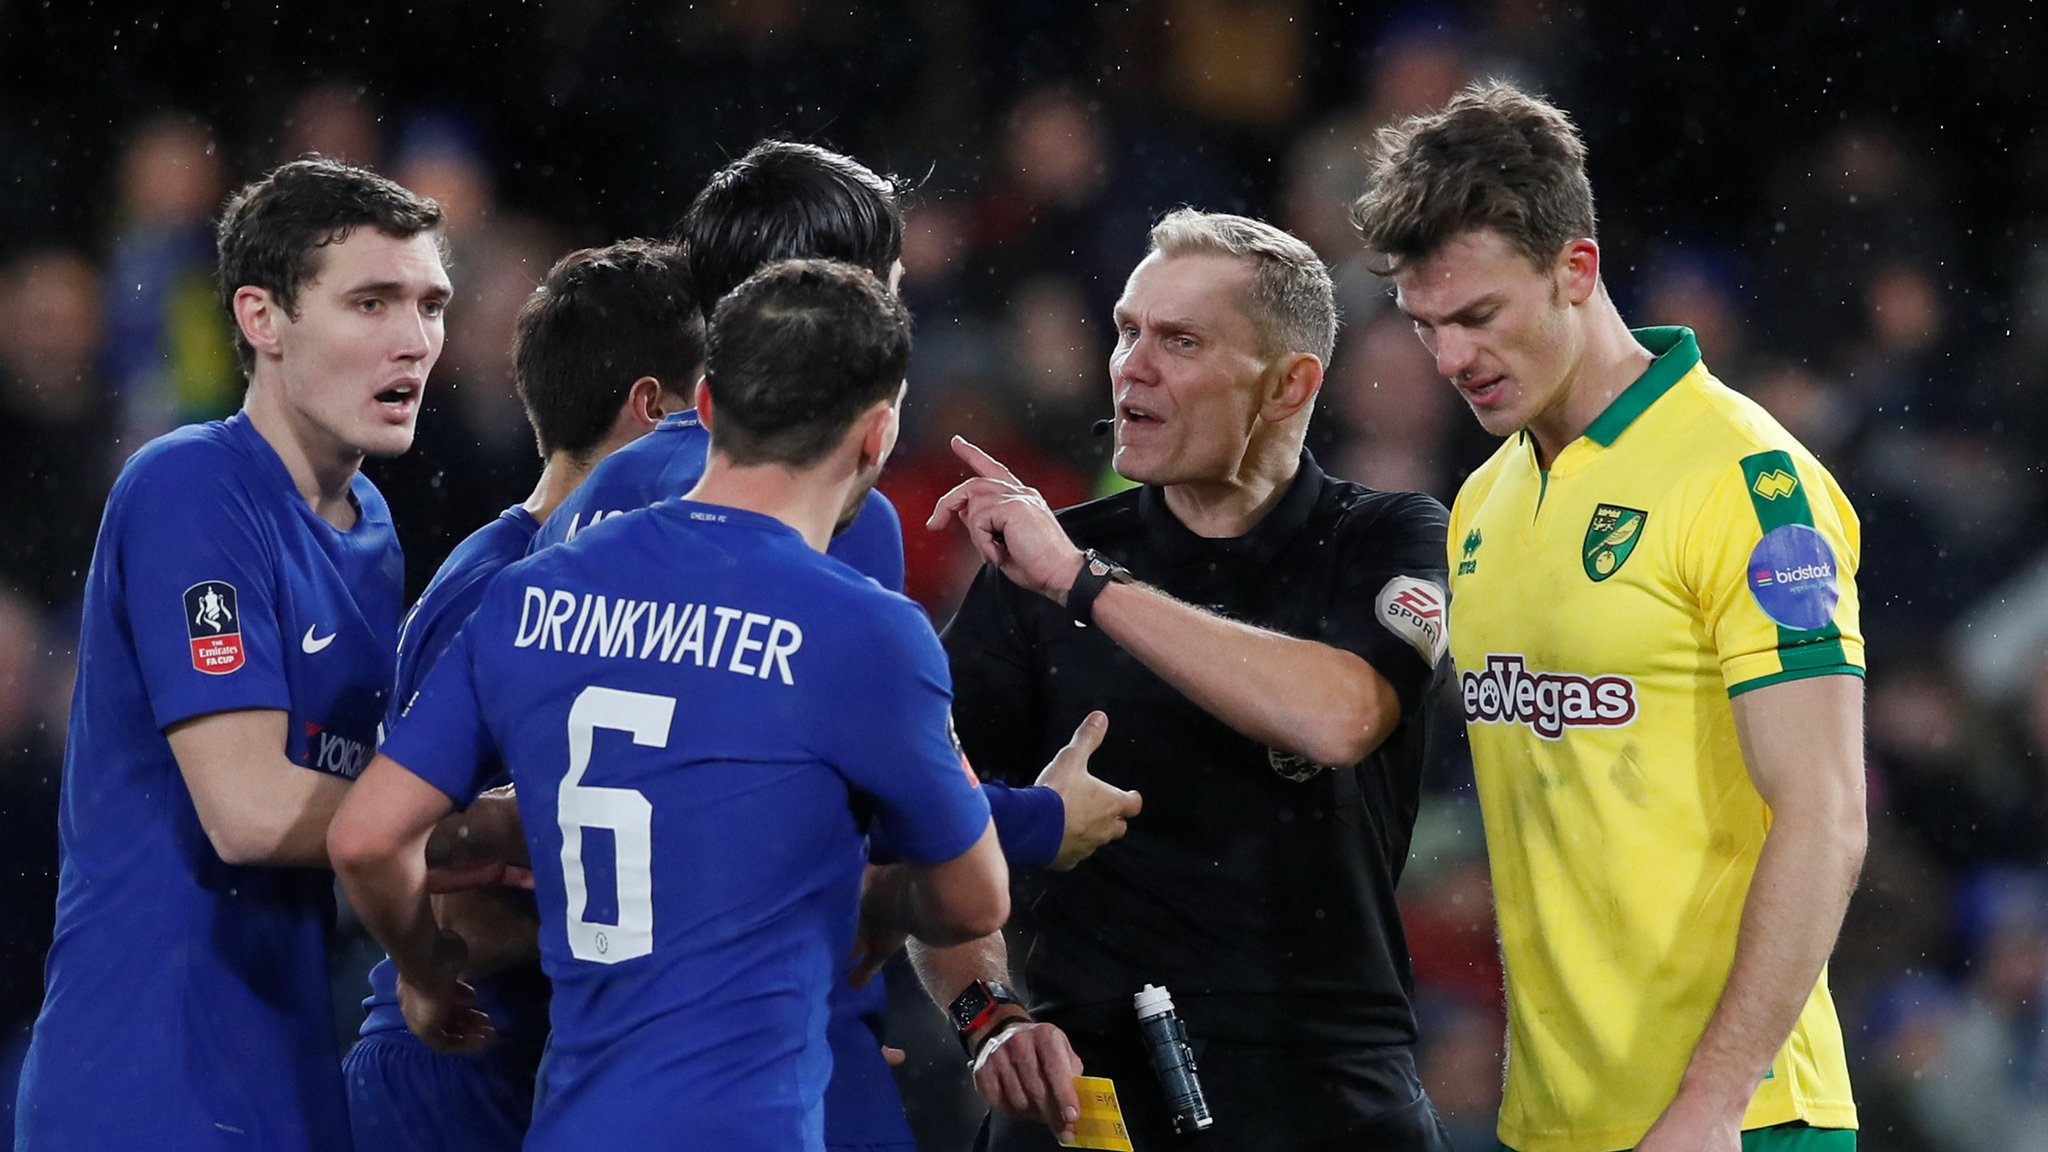 'Ref should have been told to watch video' - Conte on penalty controversy, plus VAR vote